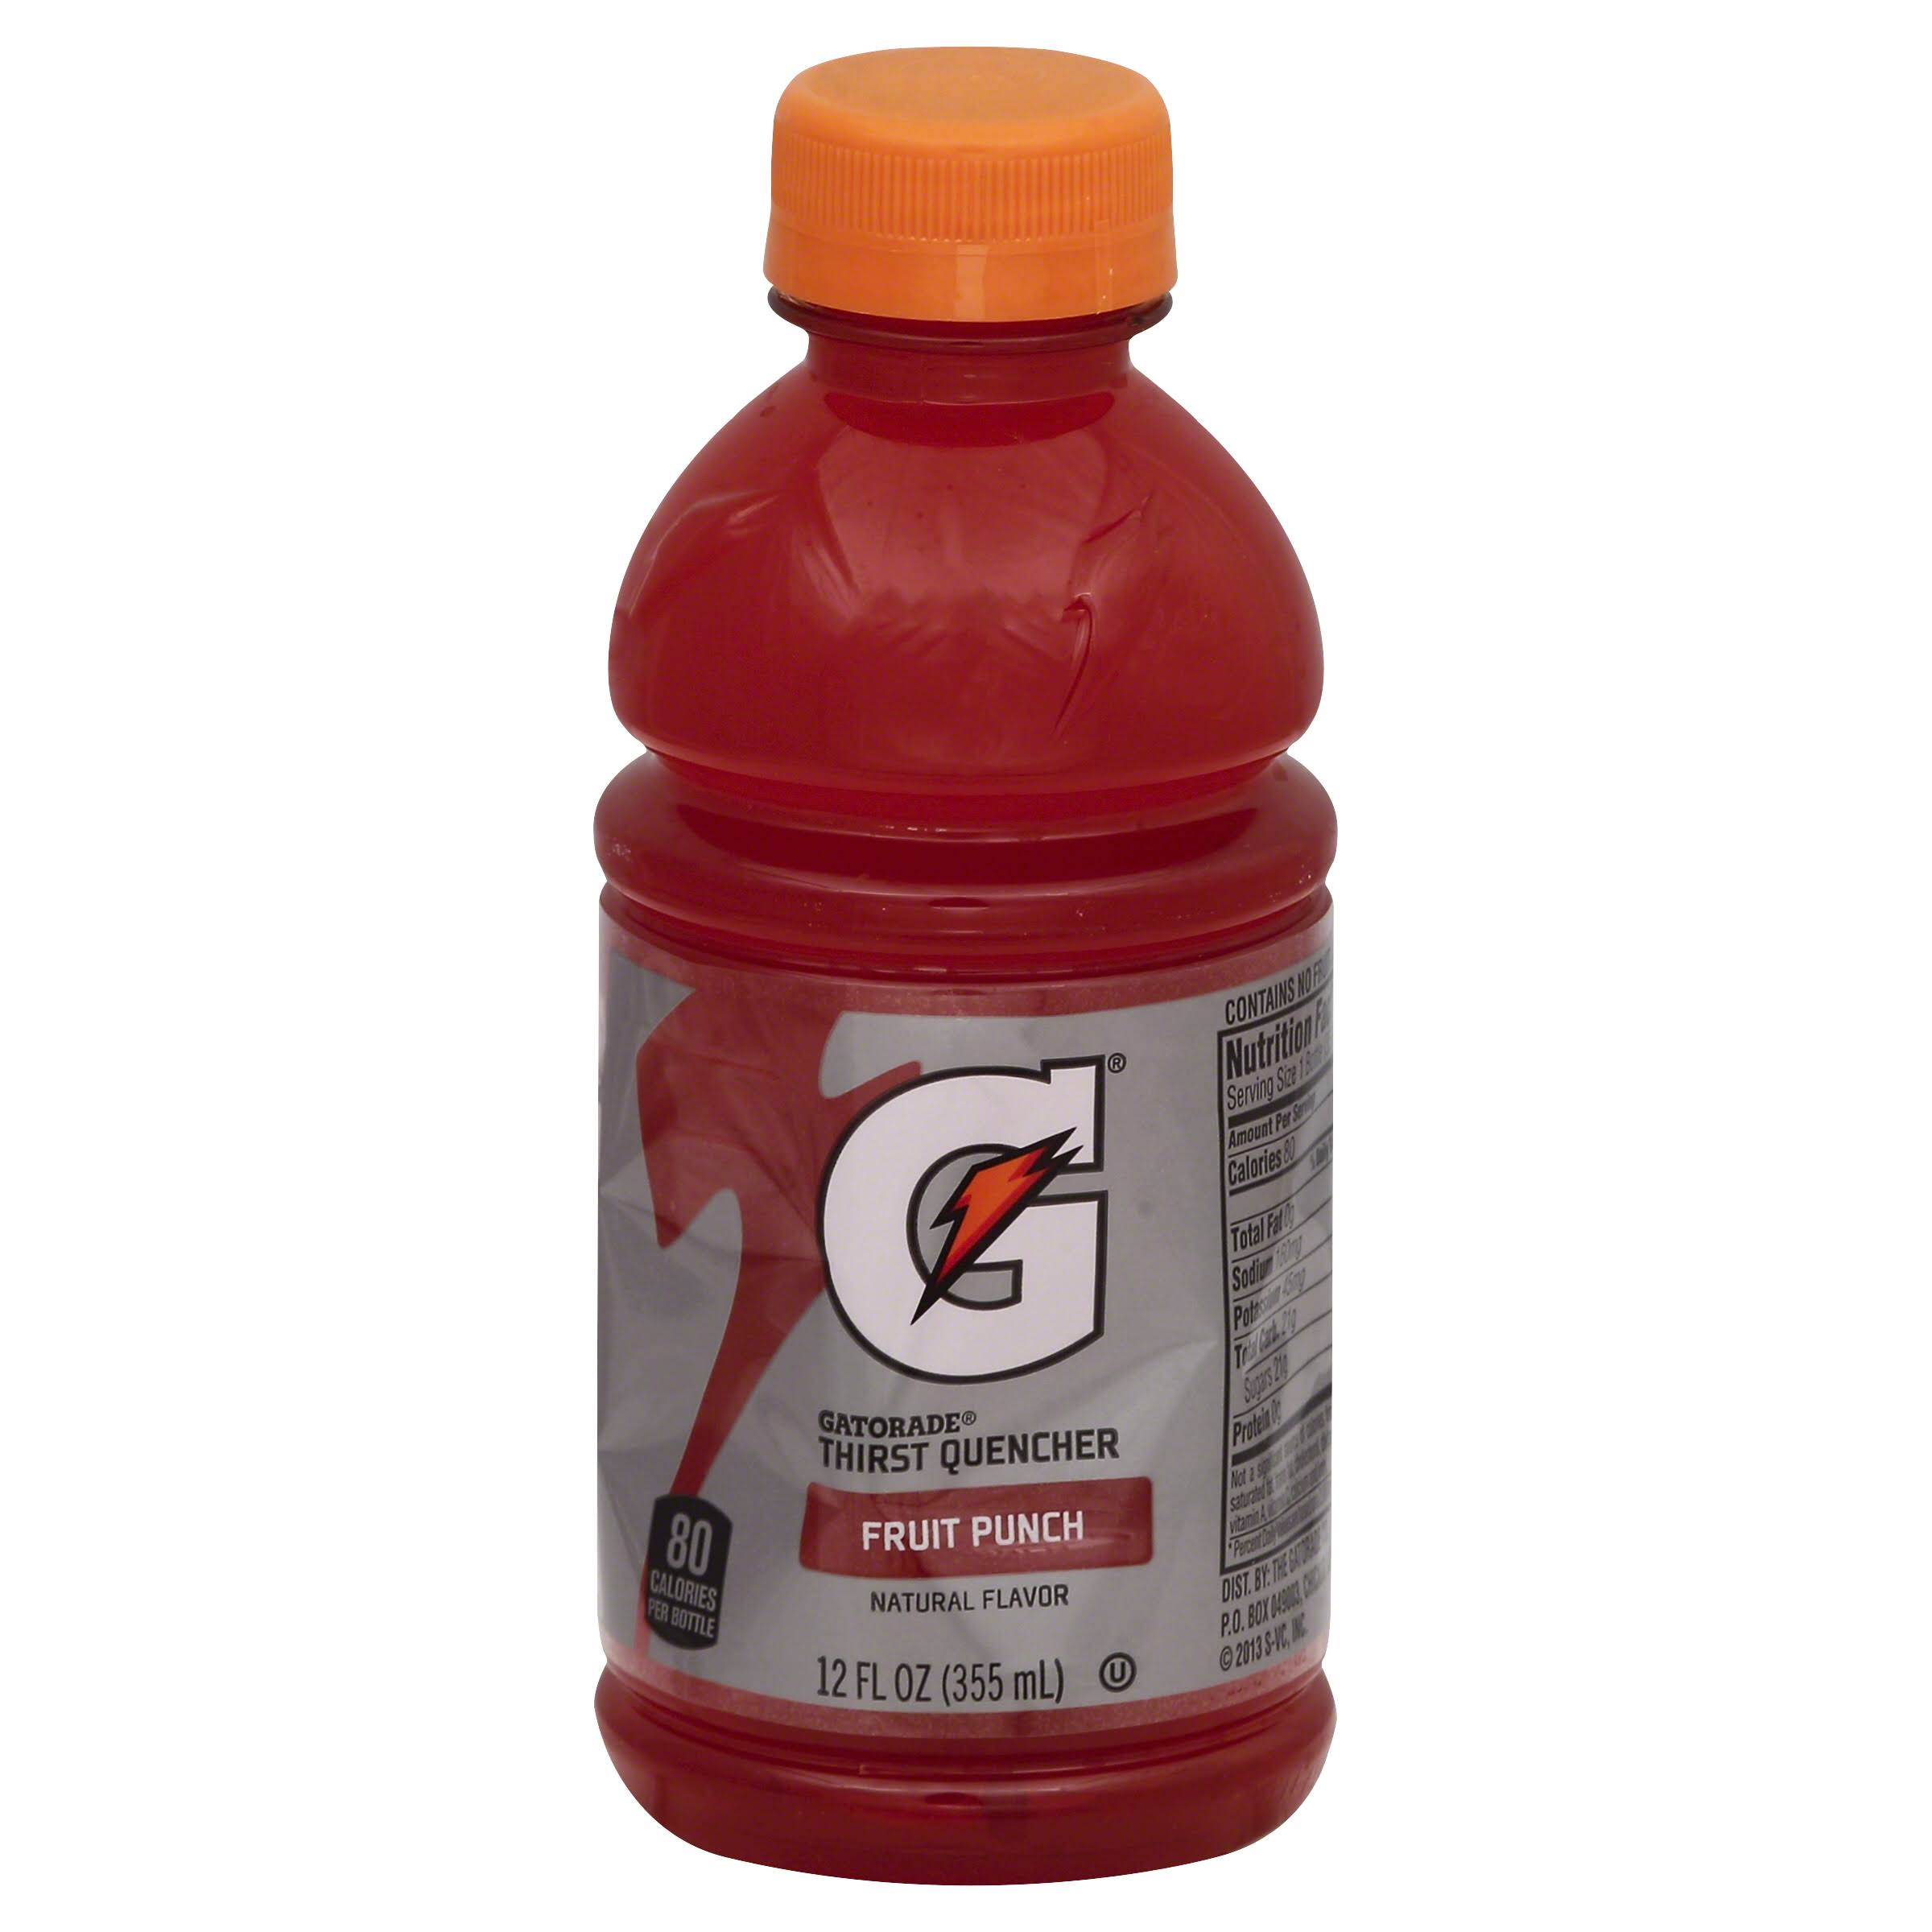 Gatorade G Series Thirst Quencher, Perform, Fruit Punch - 12 fl oz